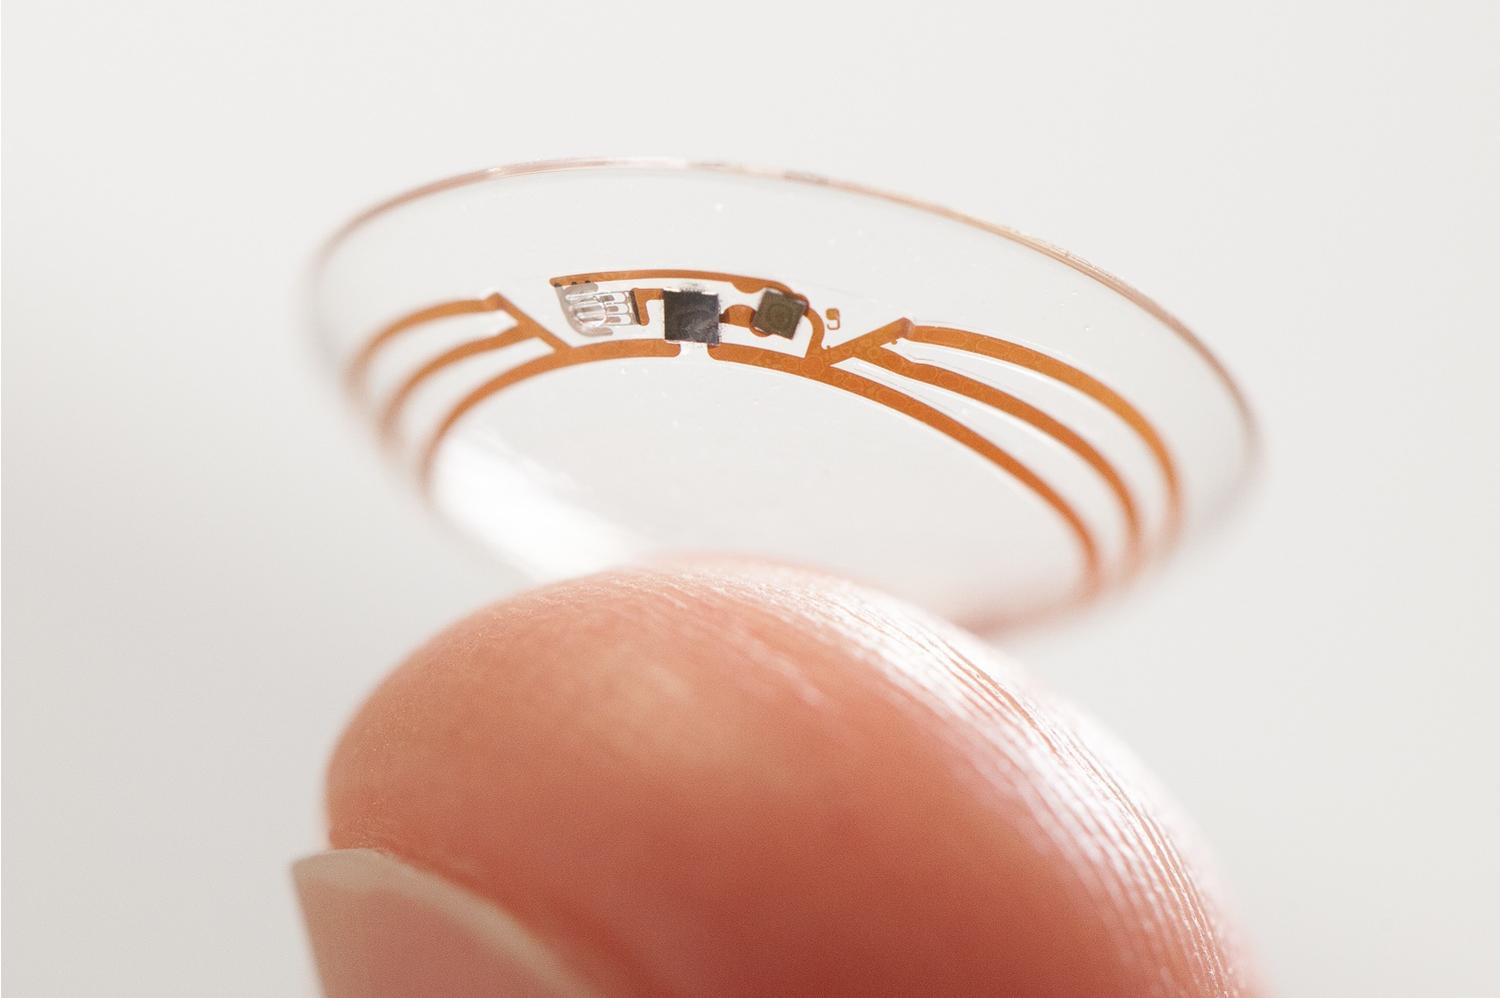 Will Google's Smart Contact Lenses Change Life As We Know It?